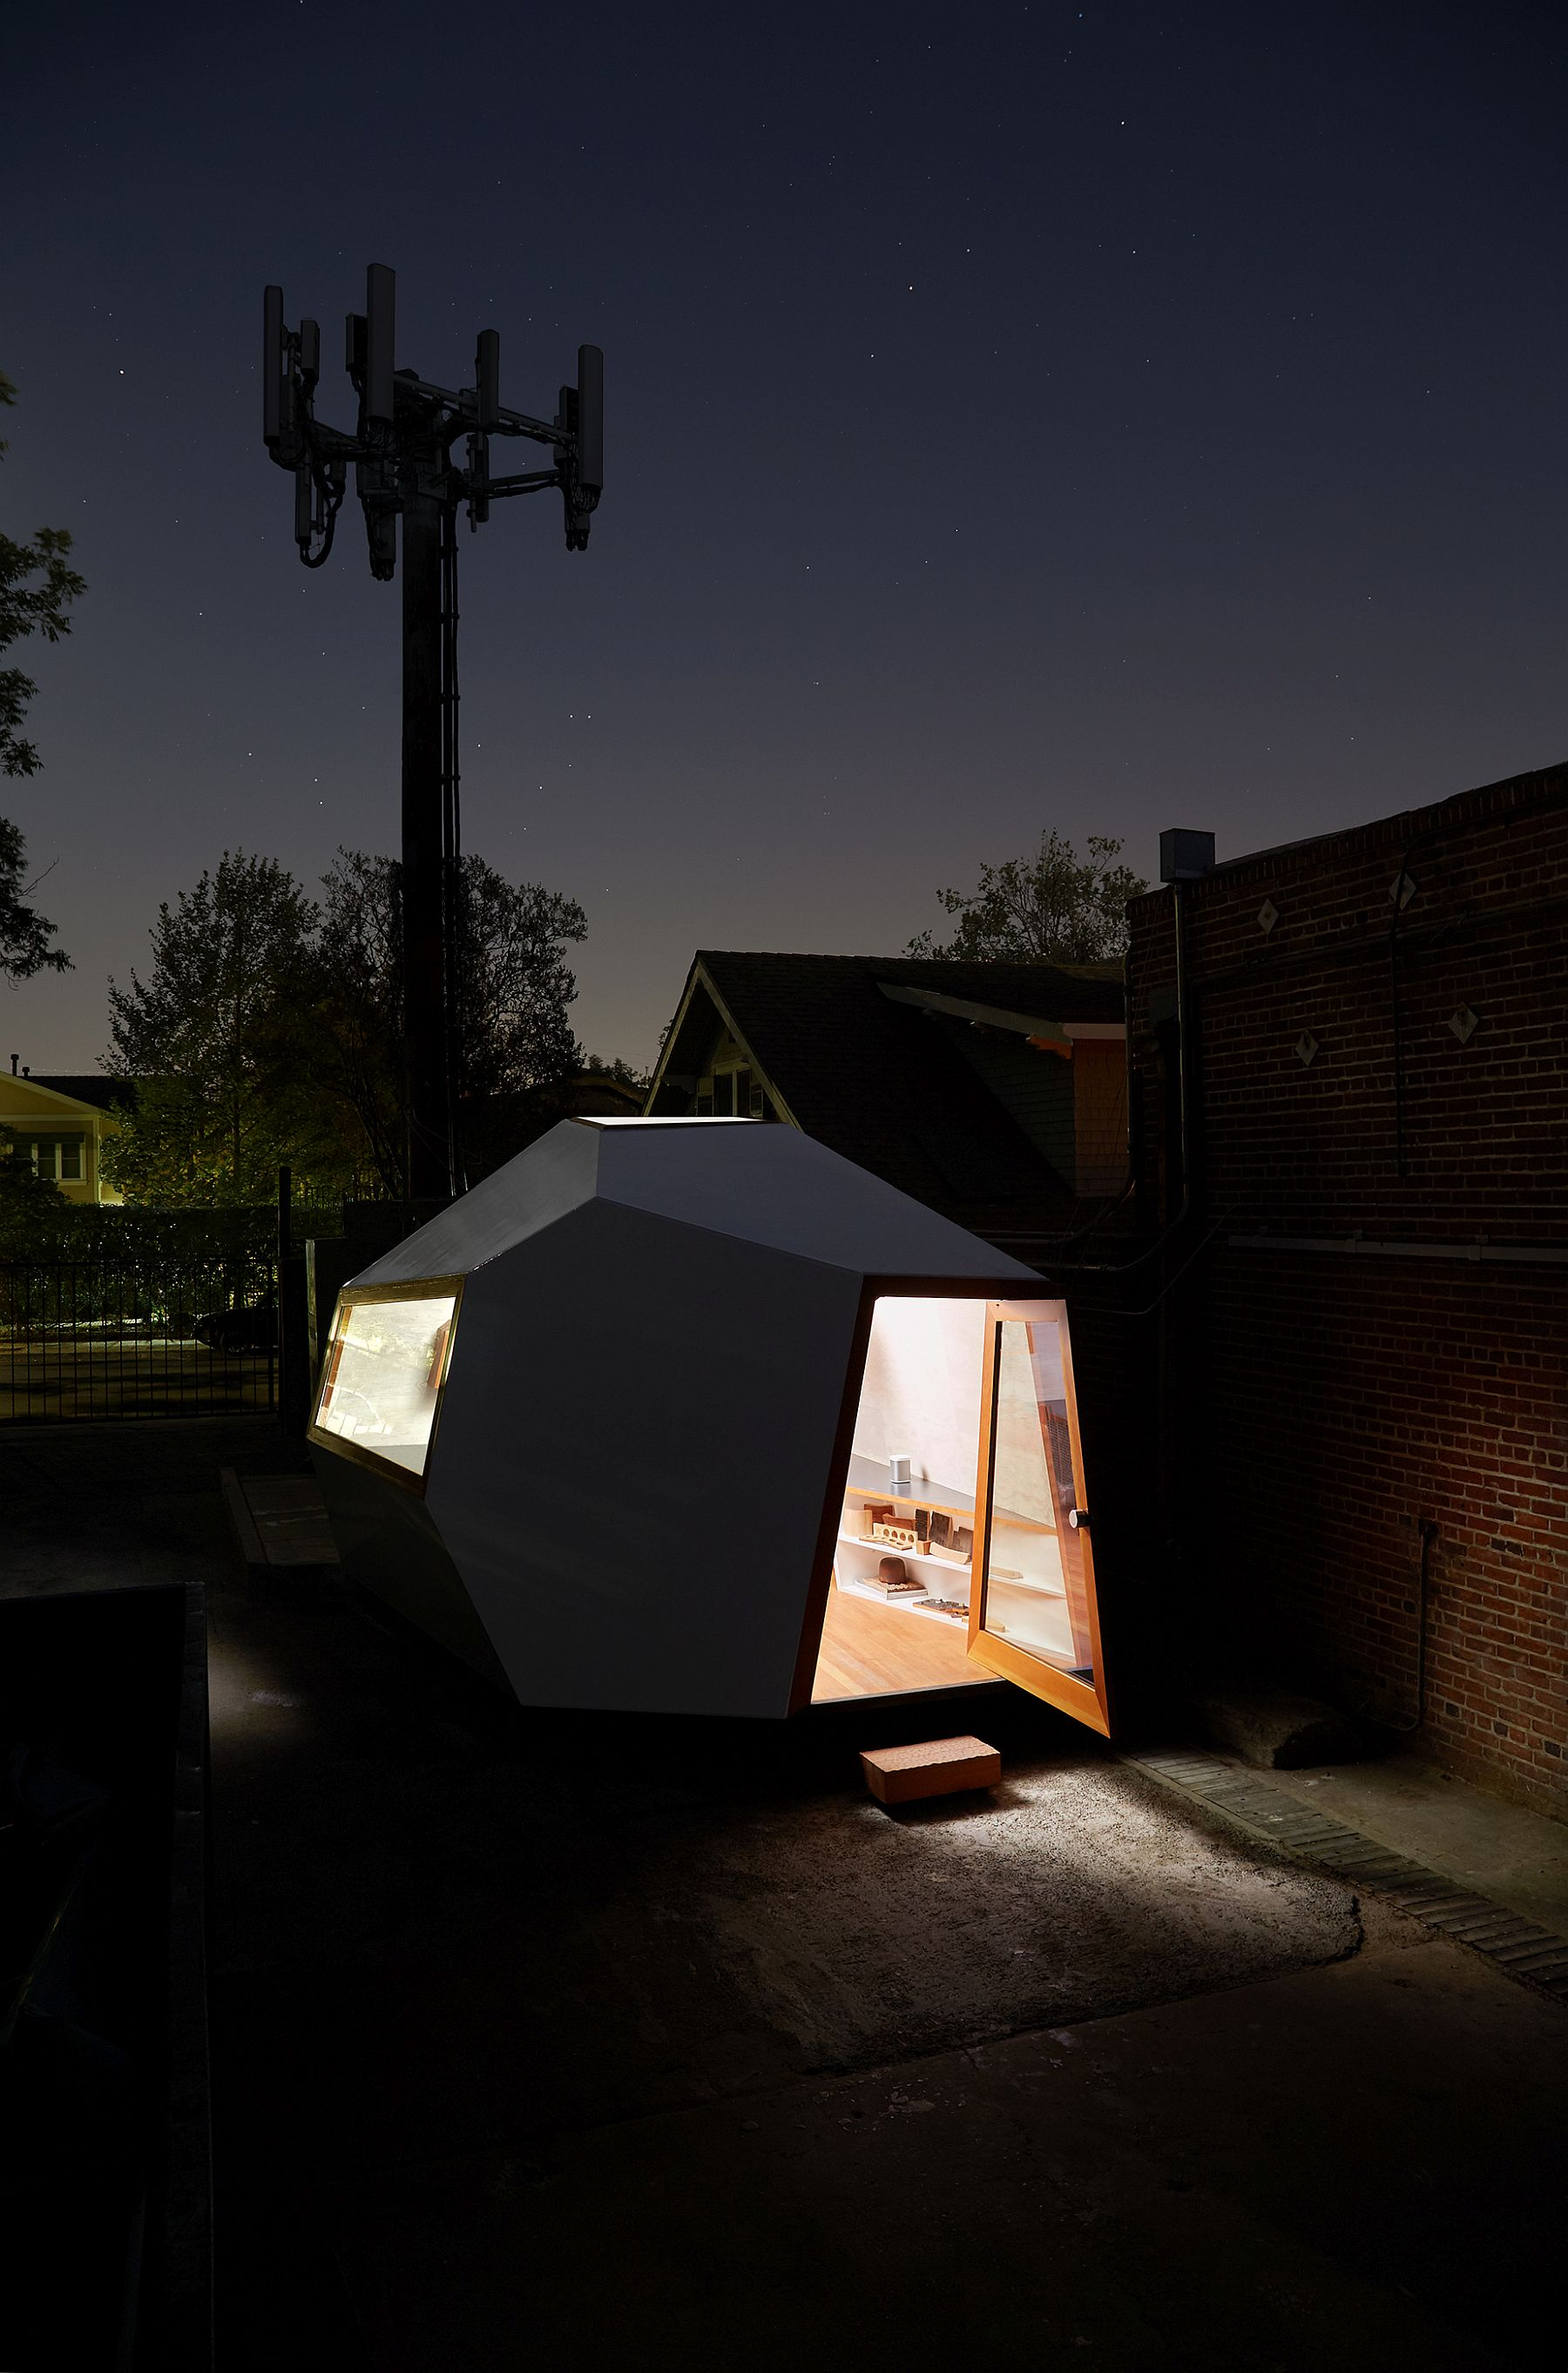 Stunning and innovative small sustainable deisgn structure that beats mundane homes!